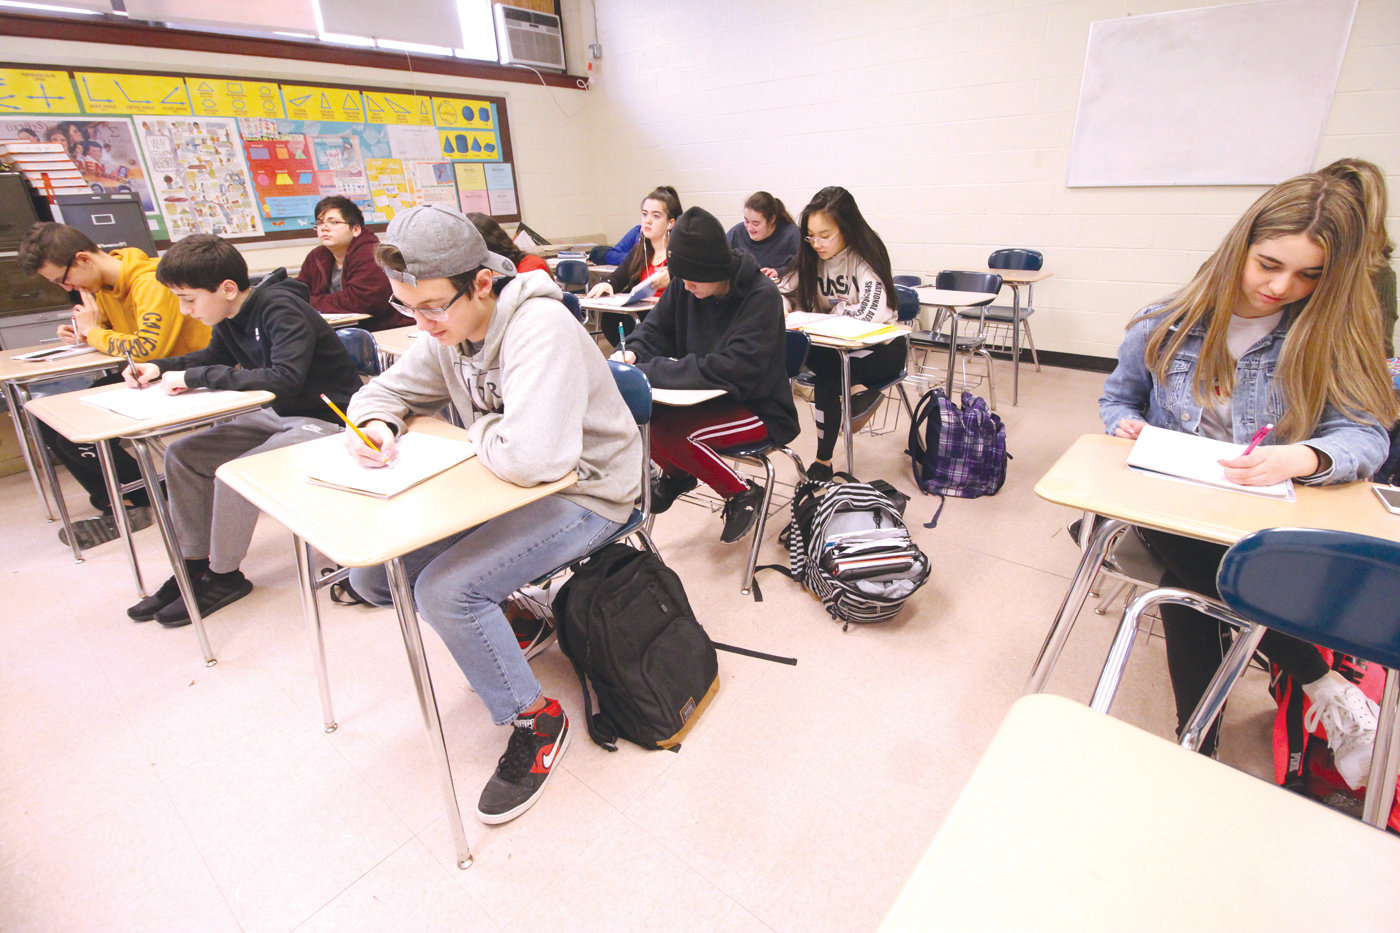 THEY KNOW THE DRILL: In the conventional classroom - this one is at Pilgrim High School in Warwick - students, sitting in rows, face the teacher in the front of the room.